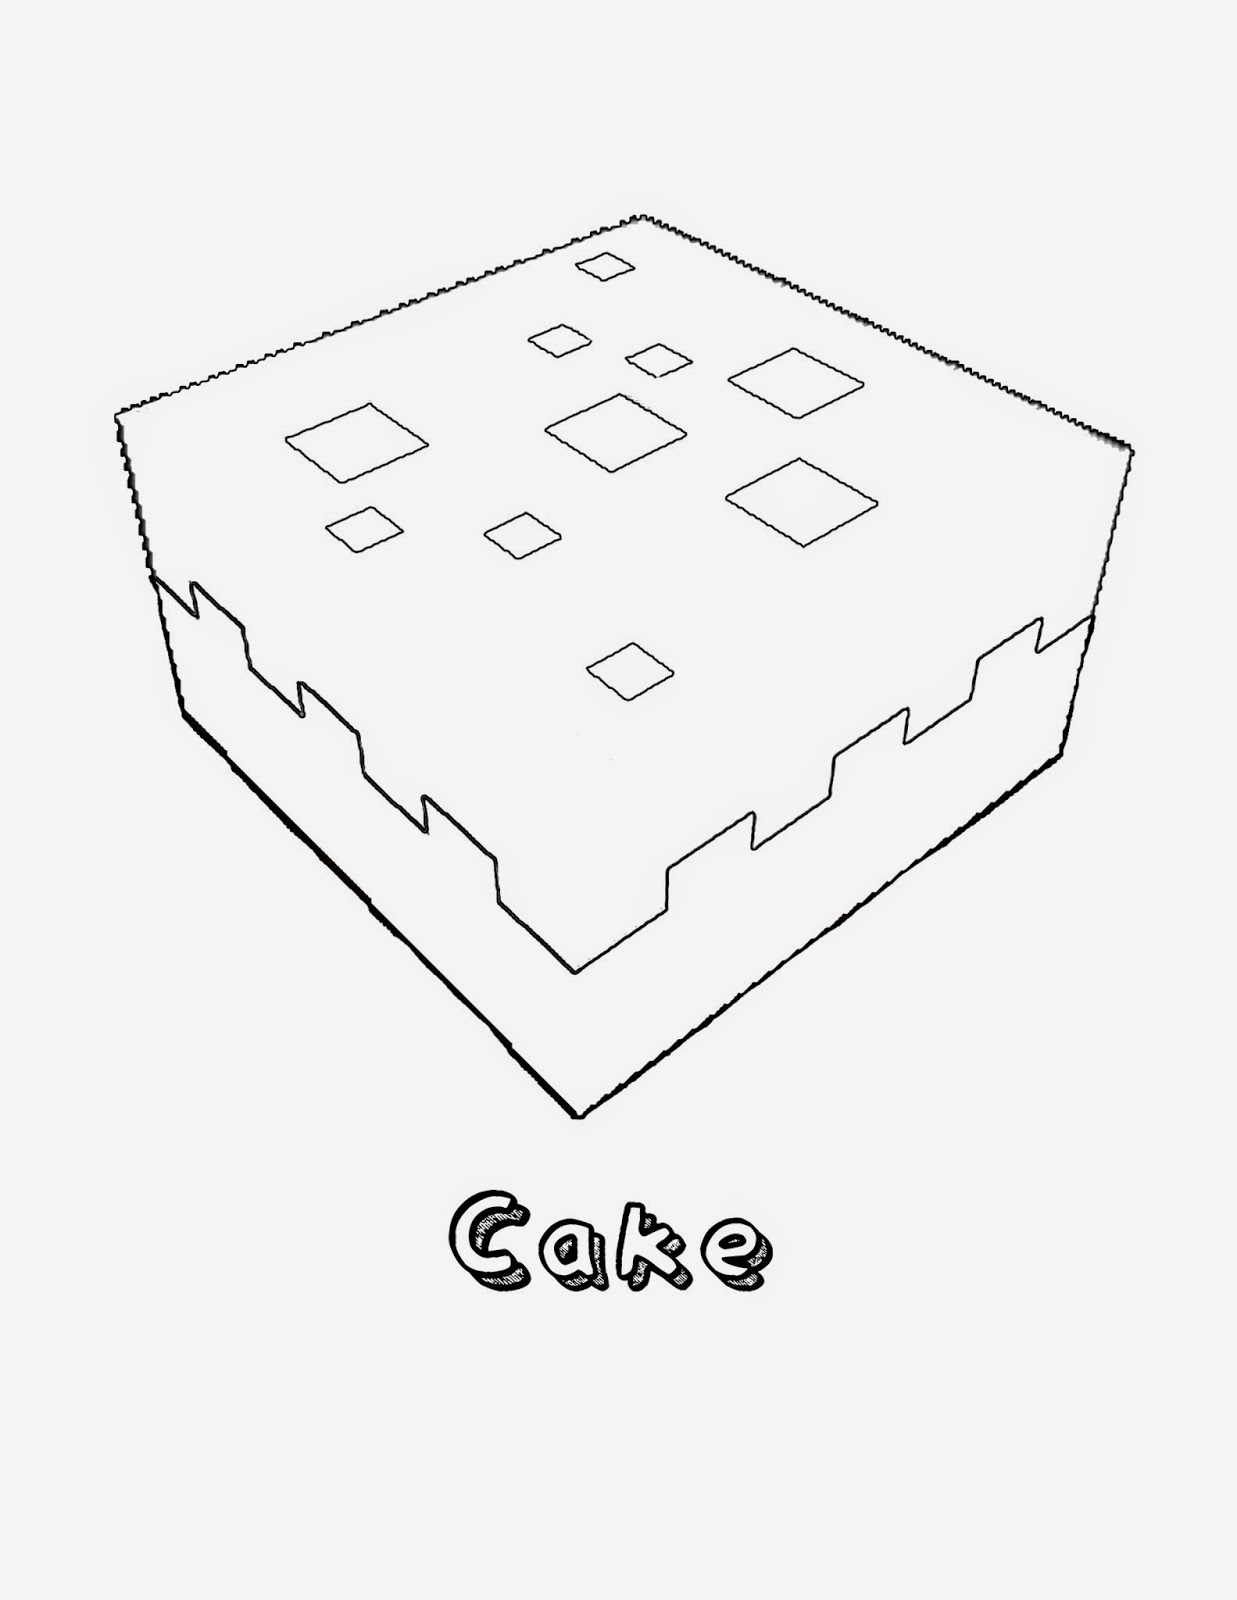 minecraft cake coloring pages how to draw cake minecraft minecraft coloring pages cake